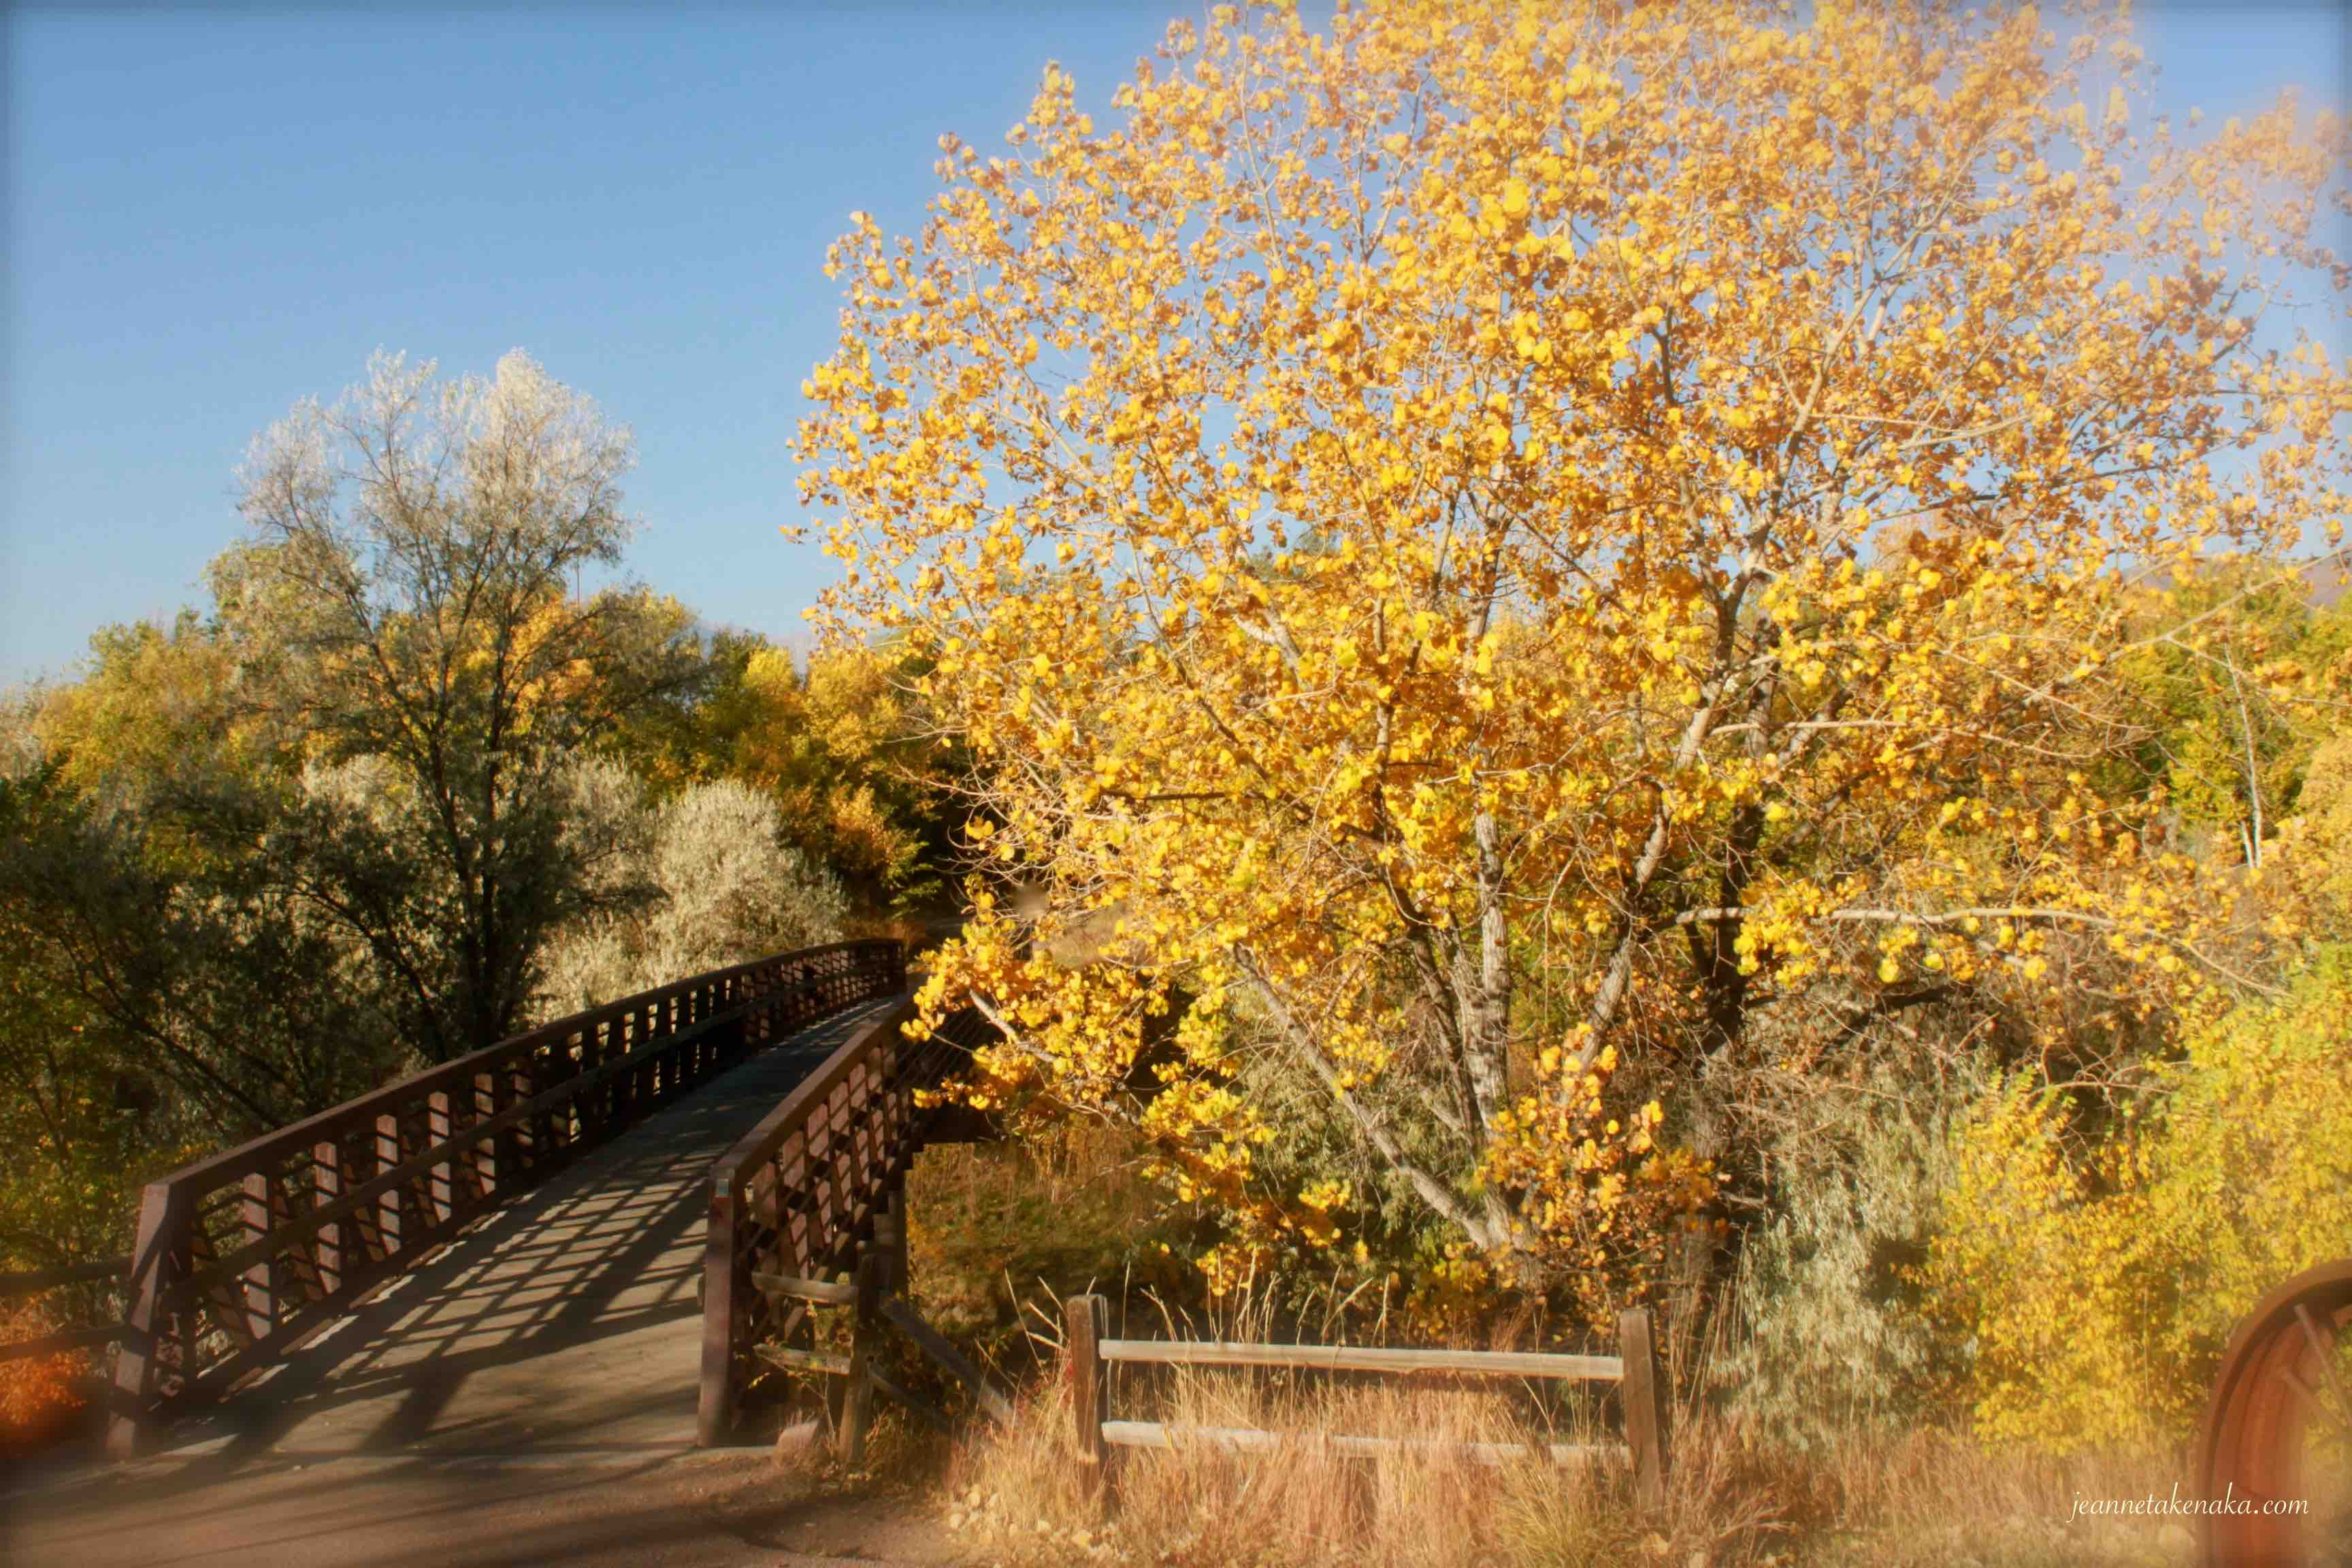 A bridge leading across a river with a tree with yellow leaves on the side